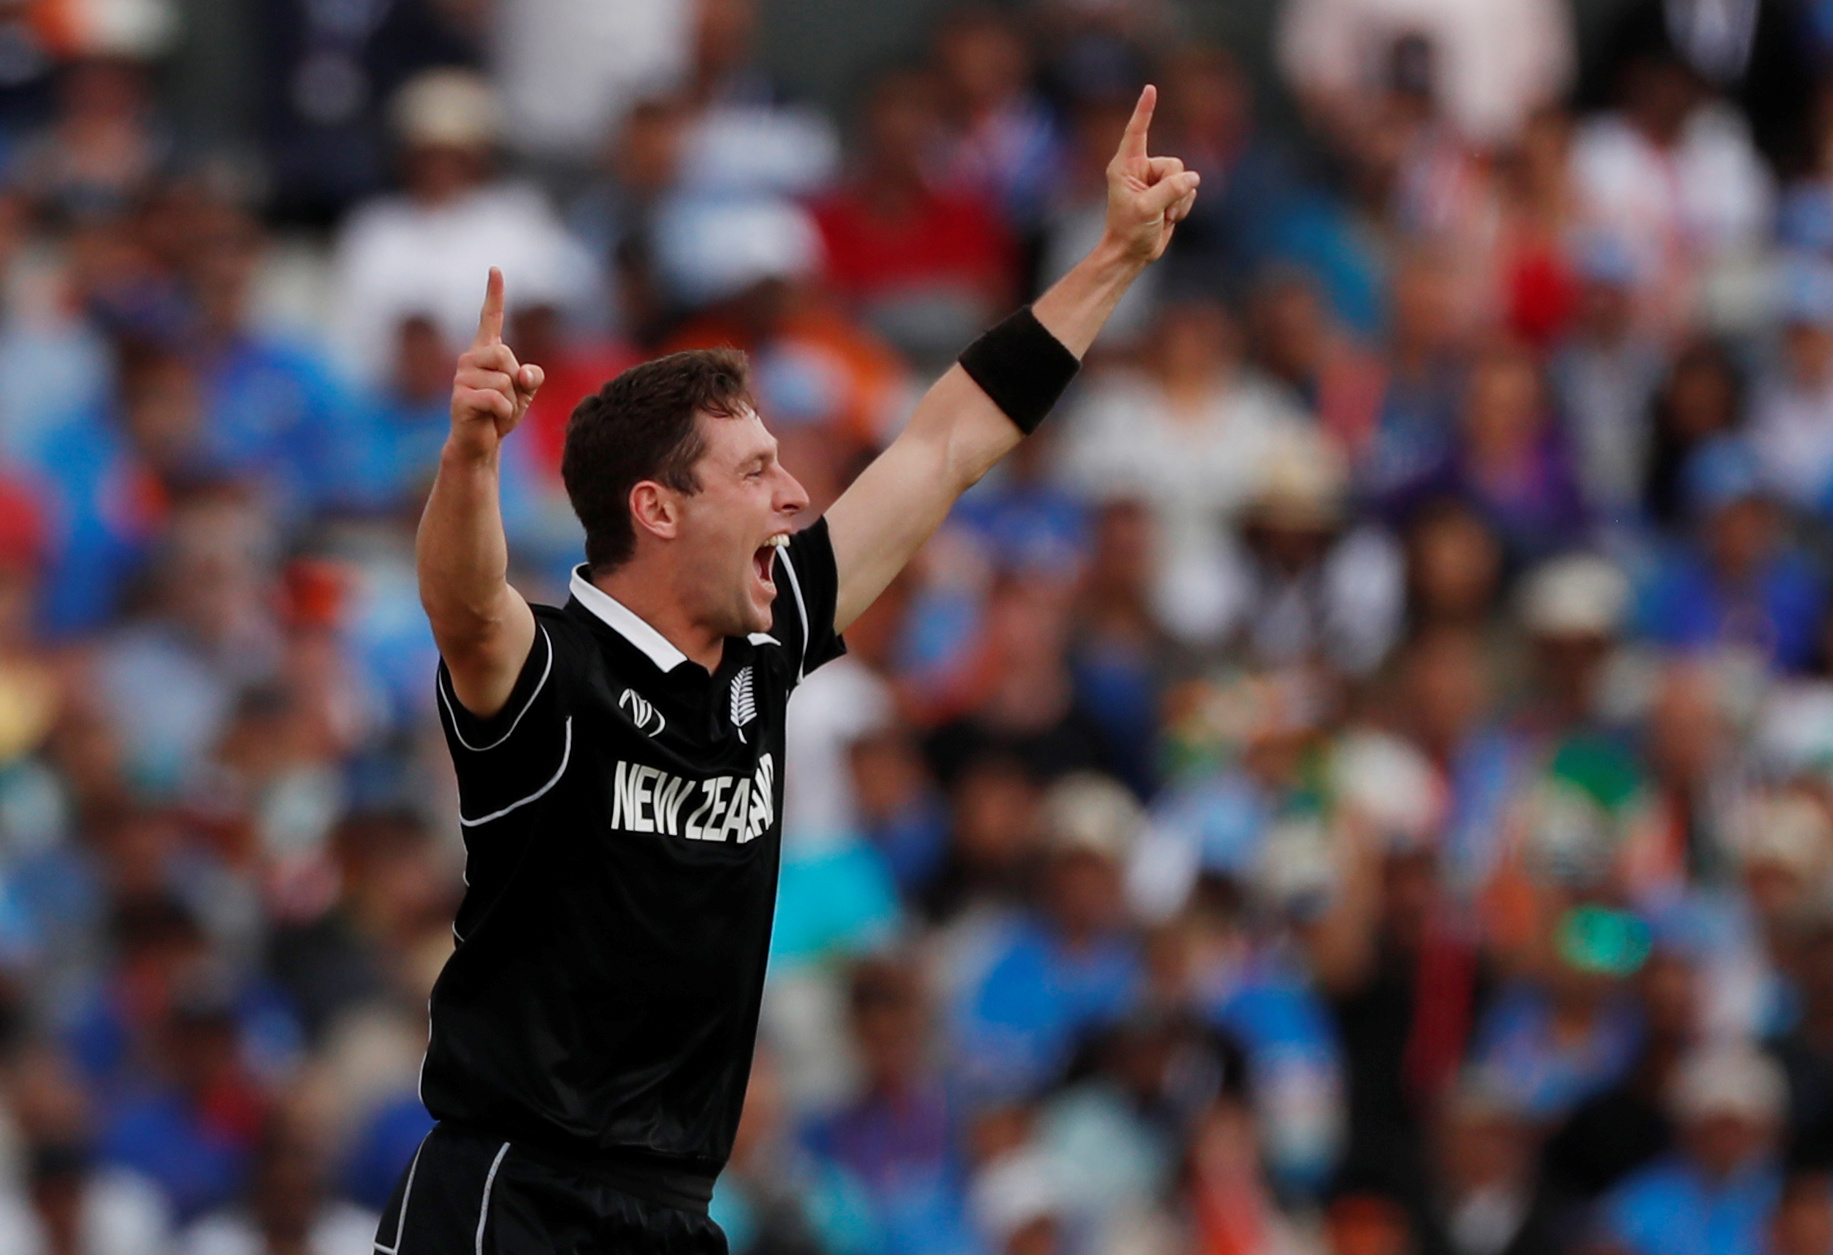 New Zealand's Matt Henry celebrates taking the wicket of India's Dinesh Karthik    Action Images via Reuters/Lee Smith